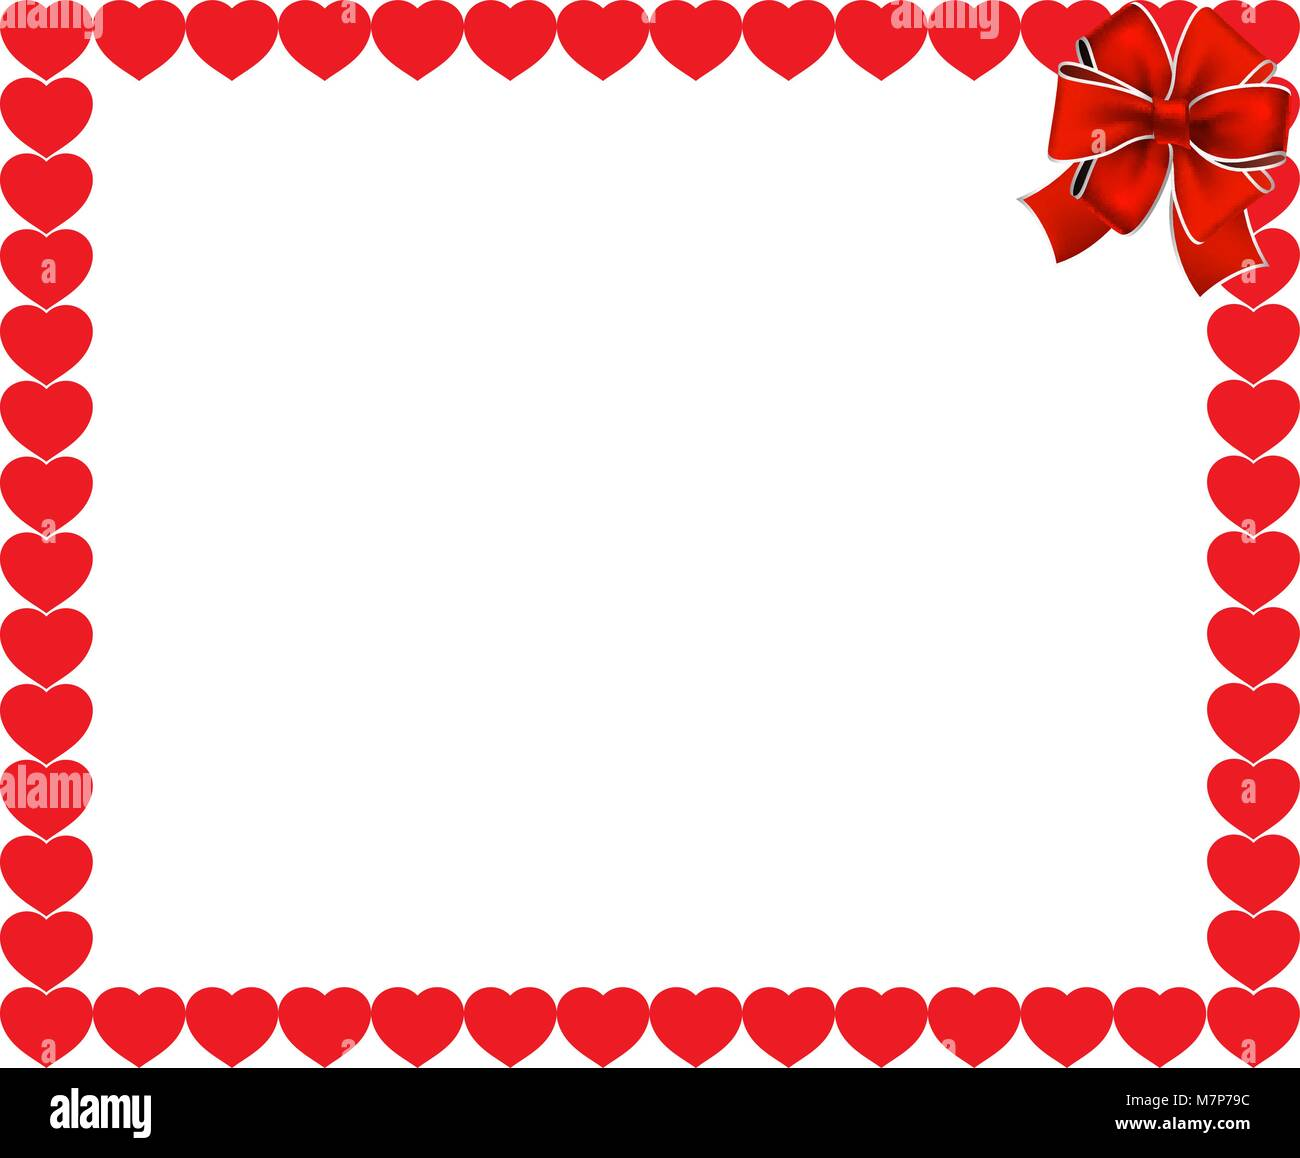 Valentines Day Or Wedding Background Red Hearts Border Frame With Space For Text Image And Festive Bow In The Corner Vector Illustration Tem